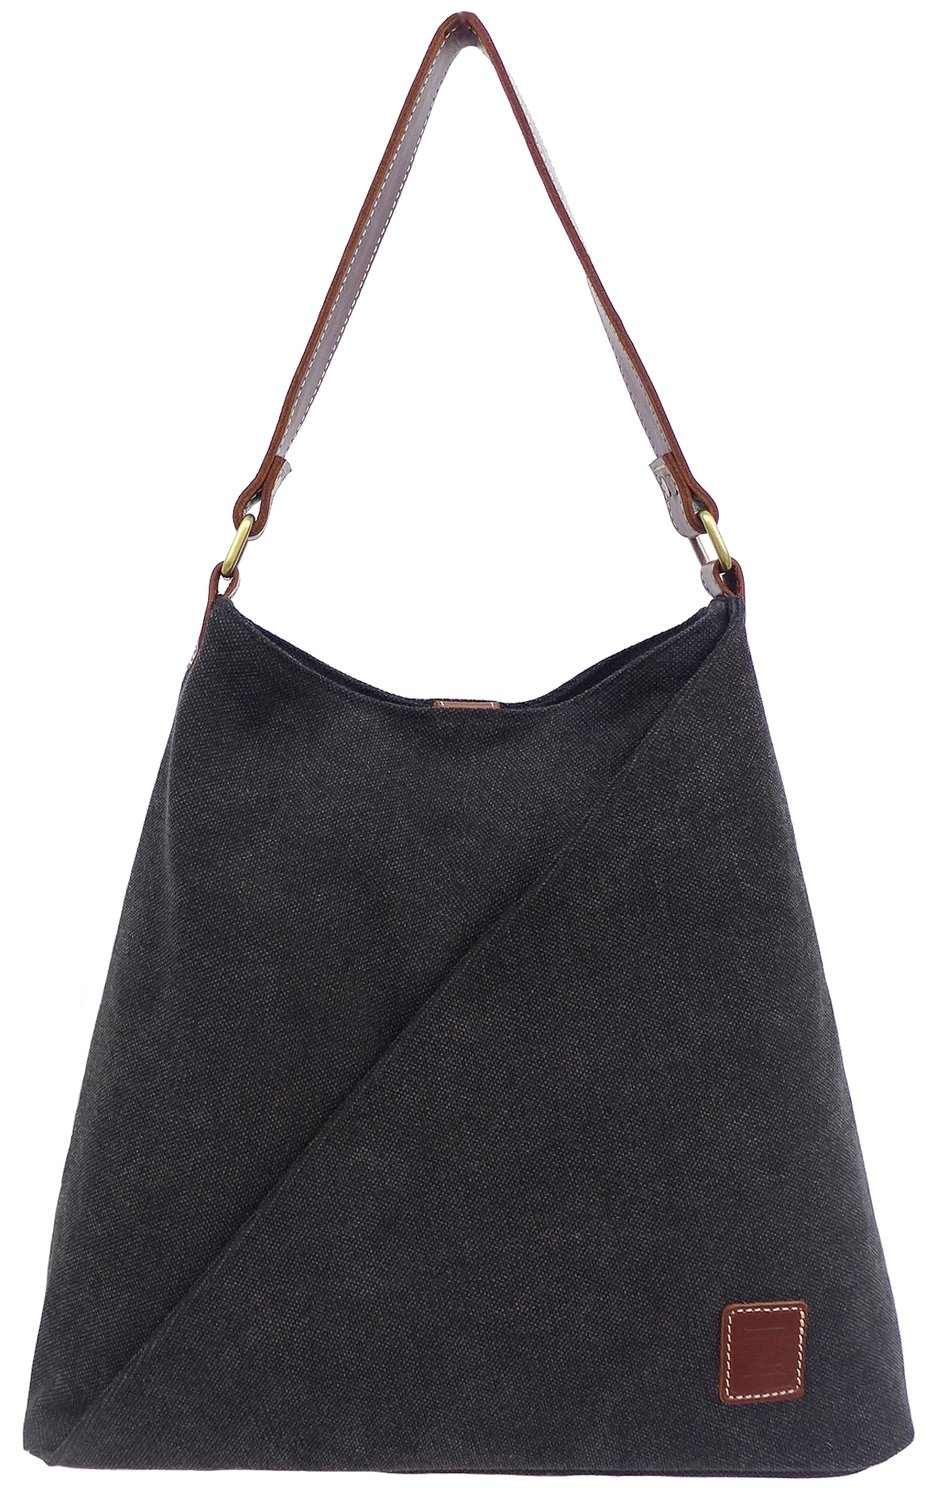 Stone-washed canvas and leather tote (black)